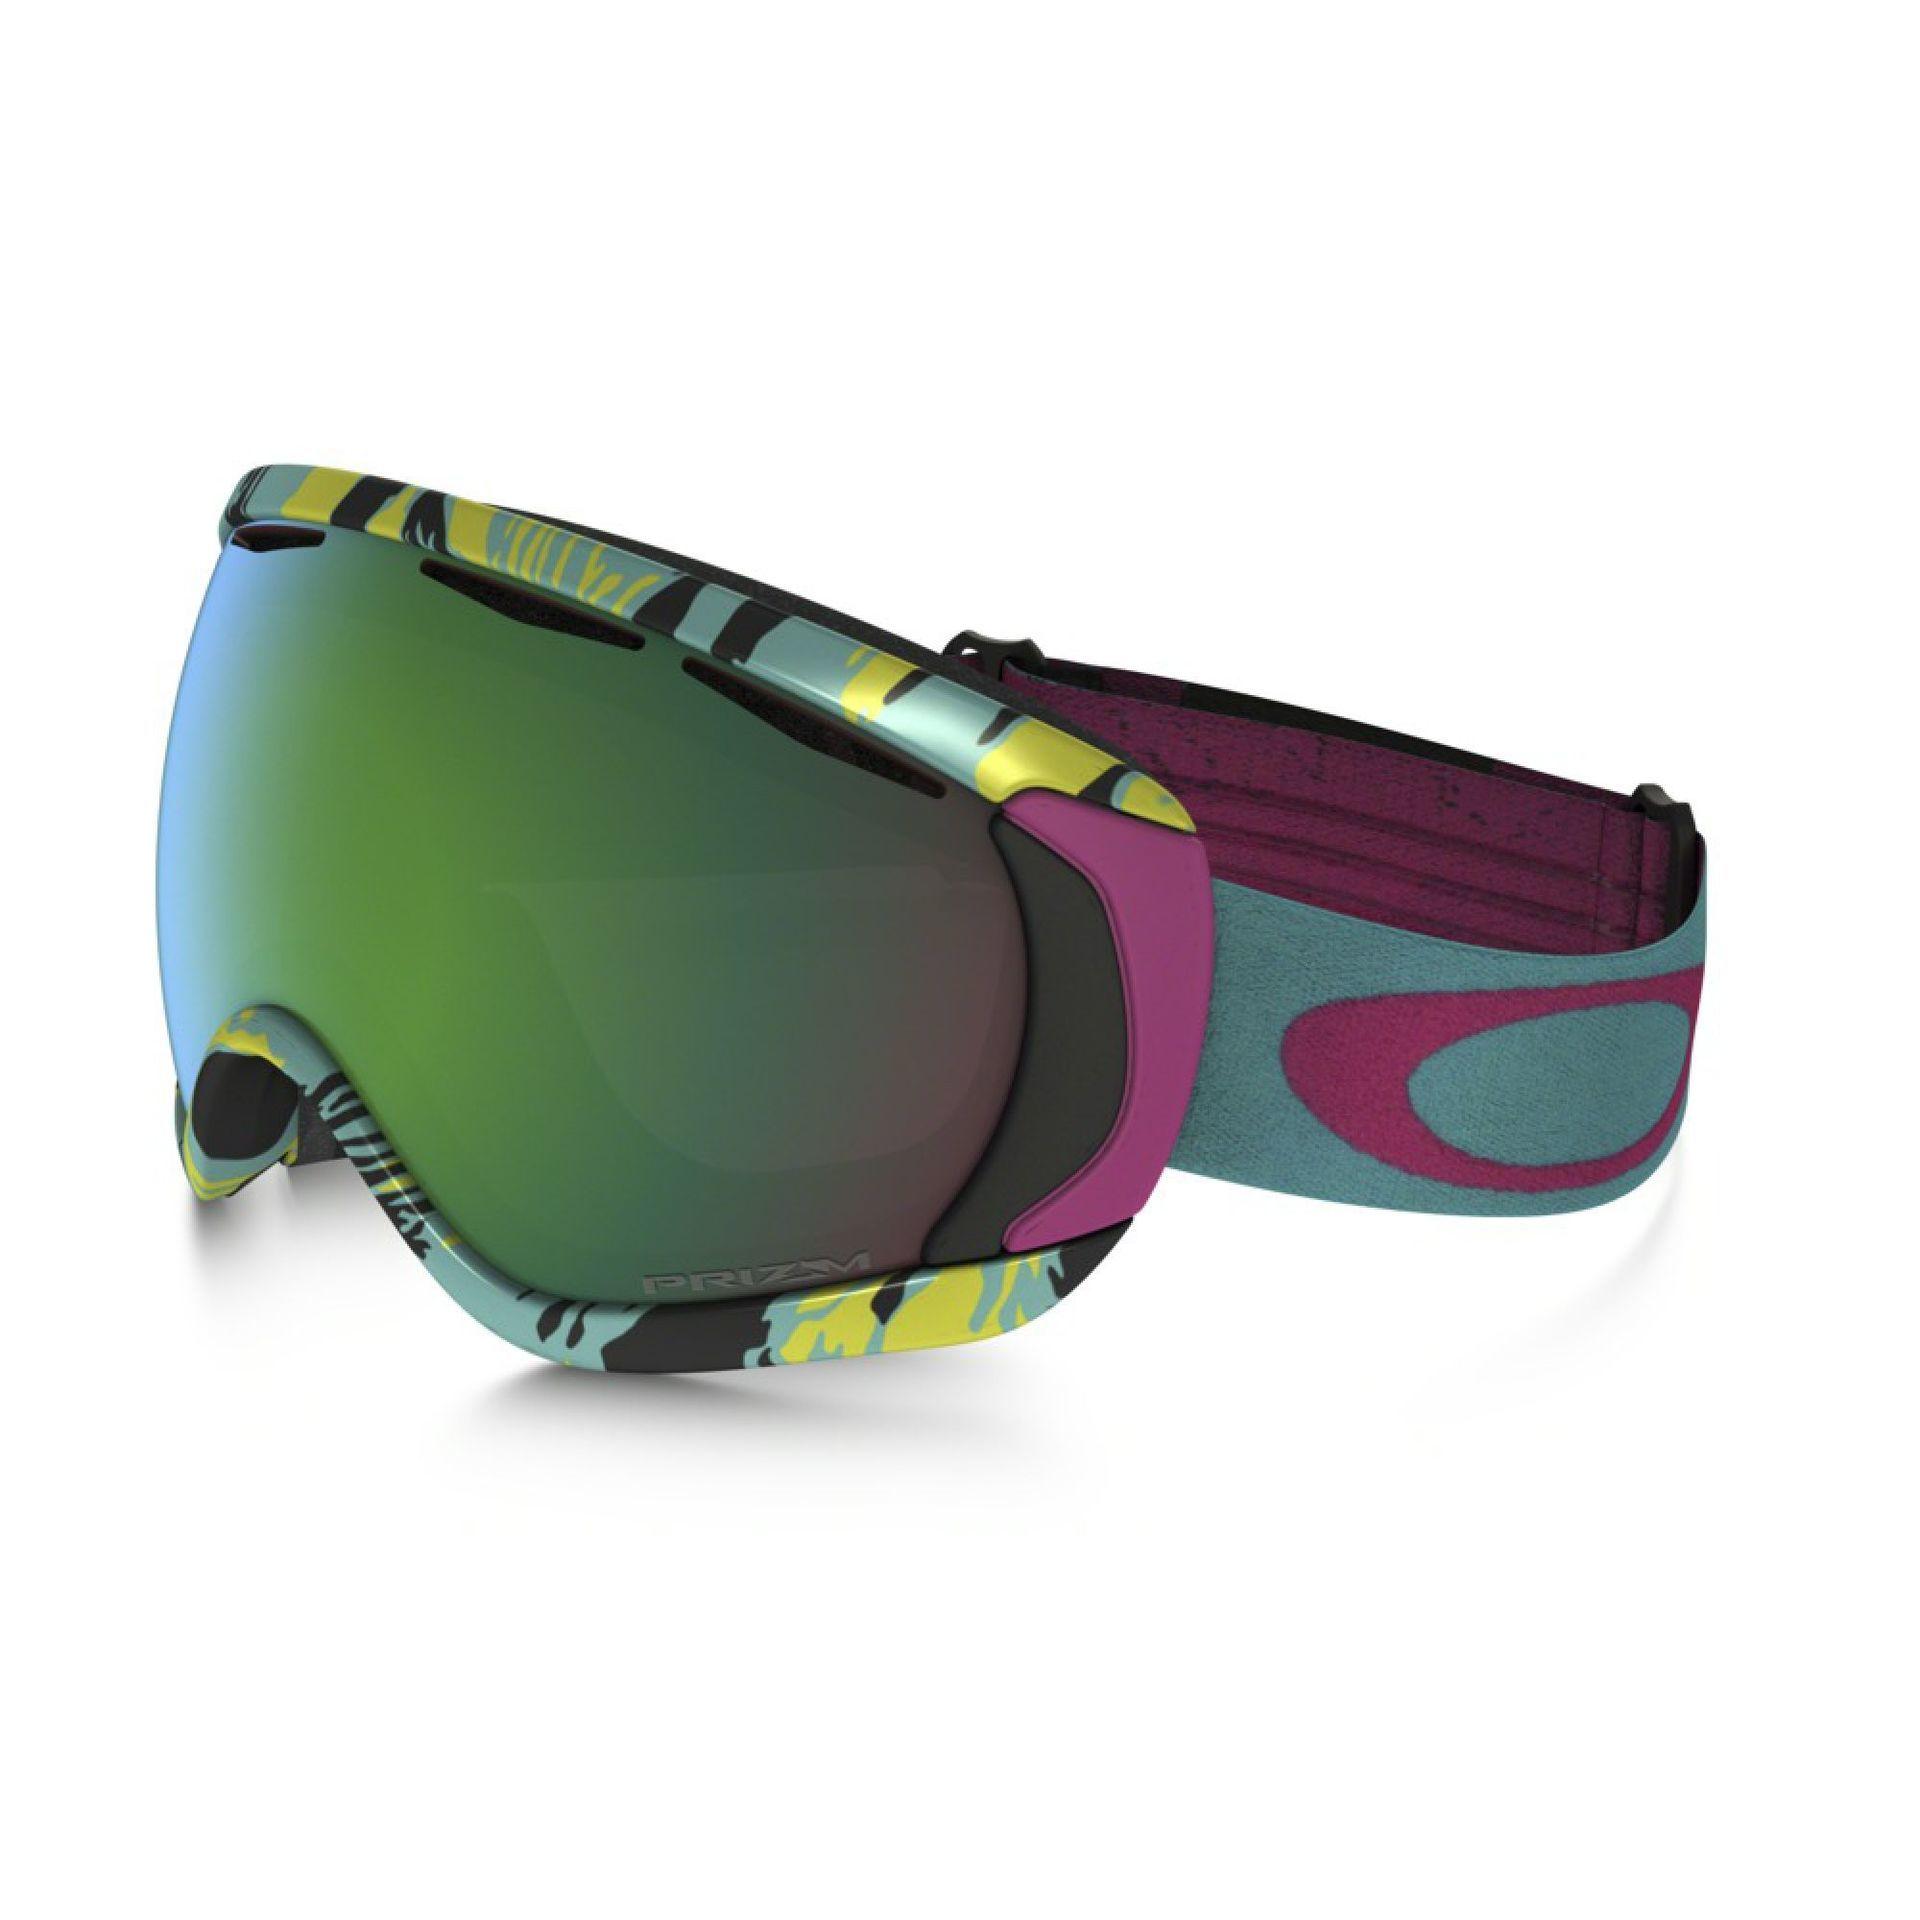 GOGLE OAKLEY SIGNATURE SERIES CANOPY DANNY KASS